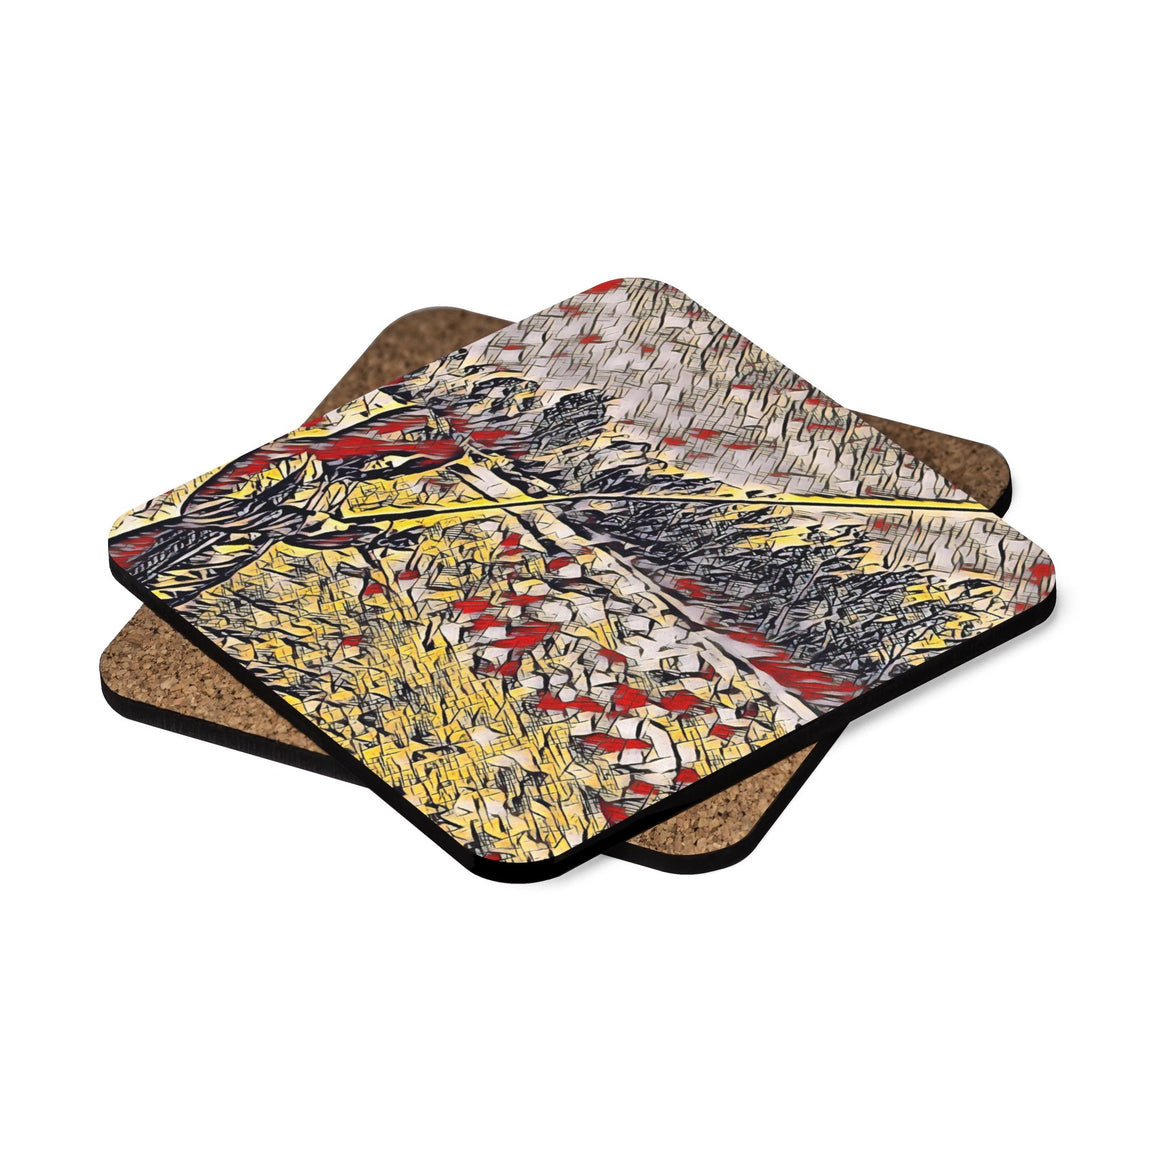 Levi Thang Fishing Design 9 Square Hardboard Coaster Set - 4pcs